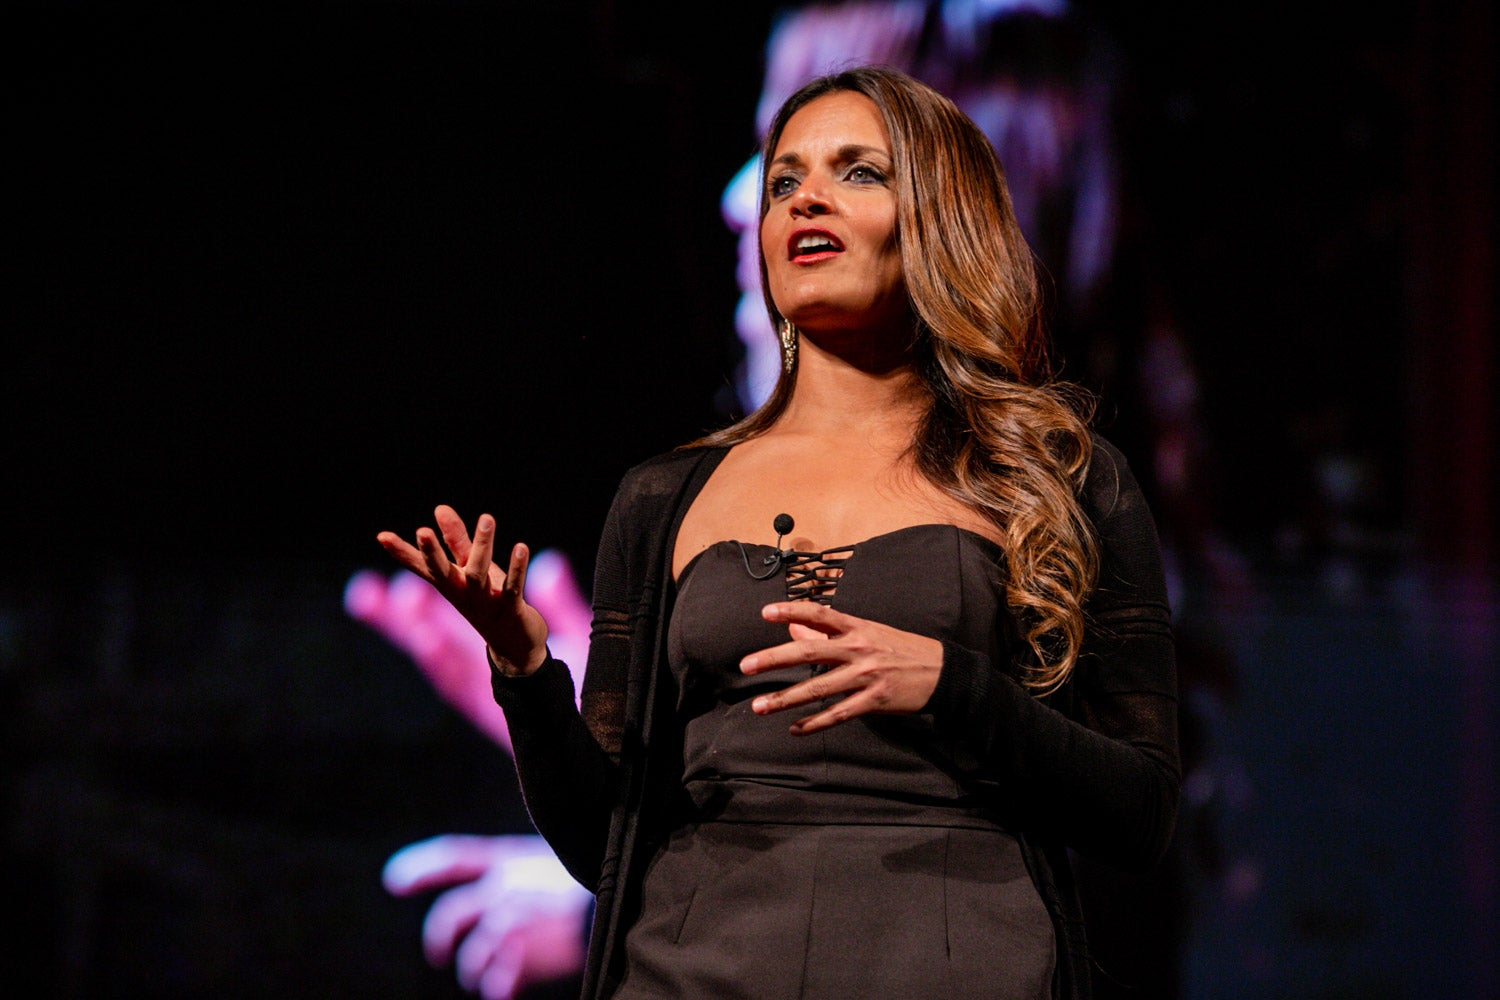 Dr. Shefali Tsabary on stage at Summit of Greatness speaking on conscious parenting